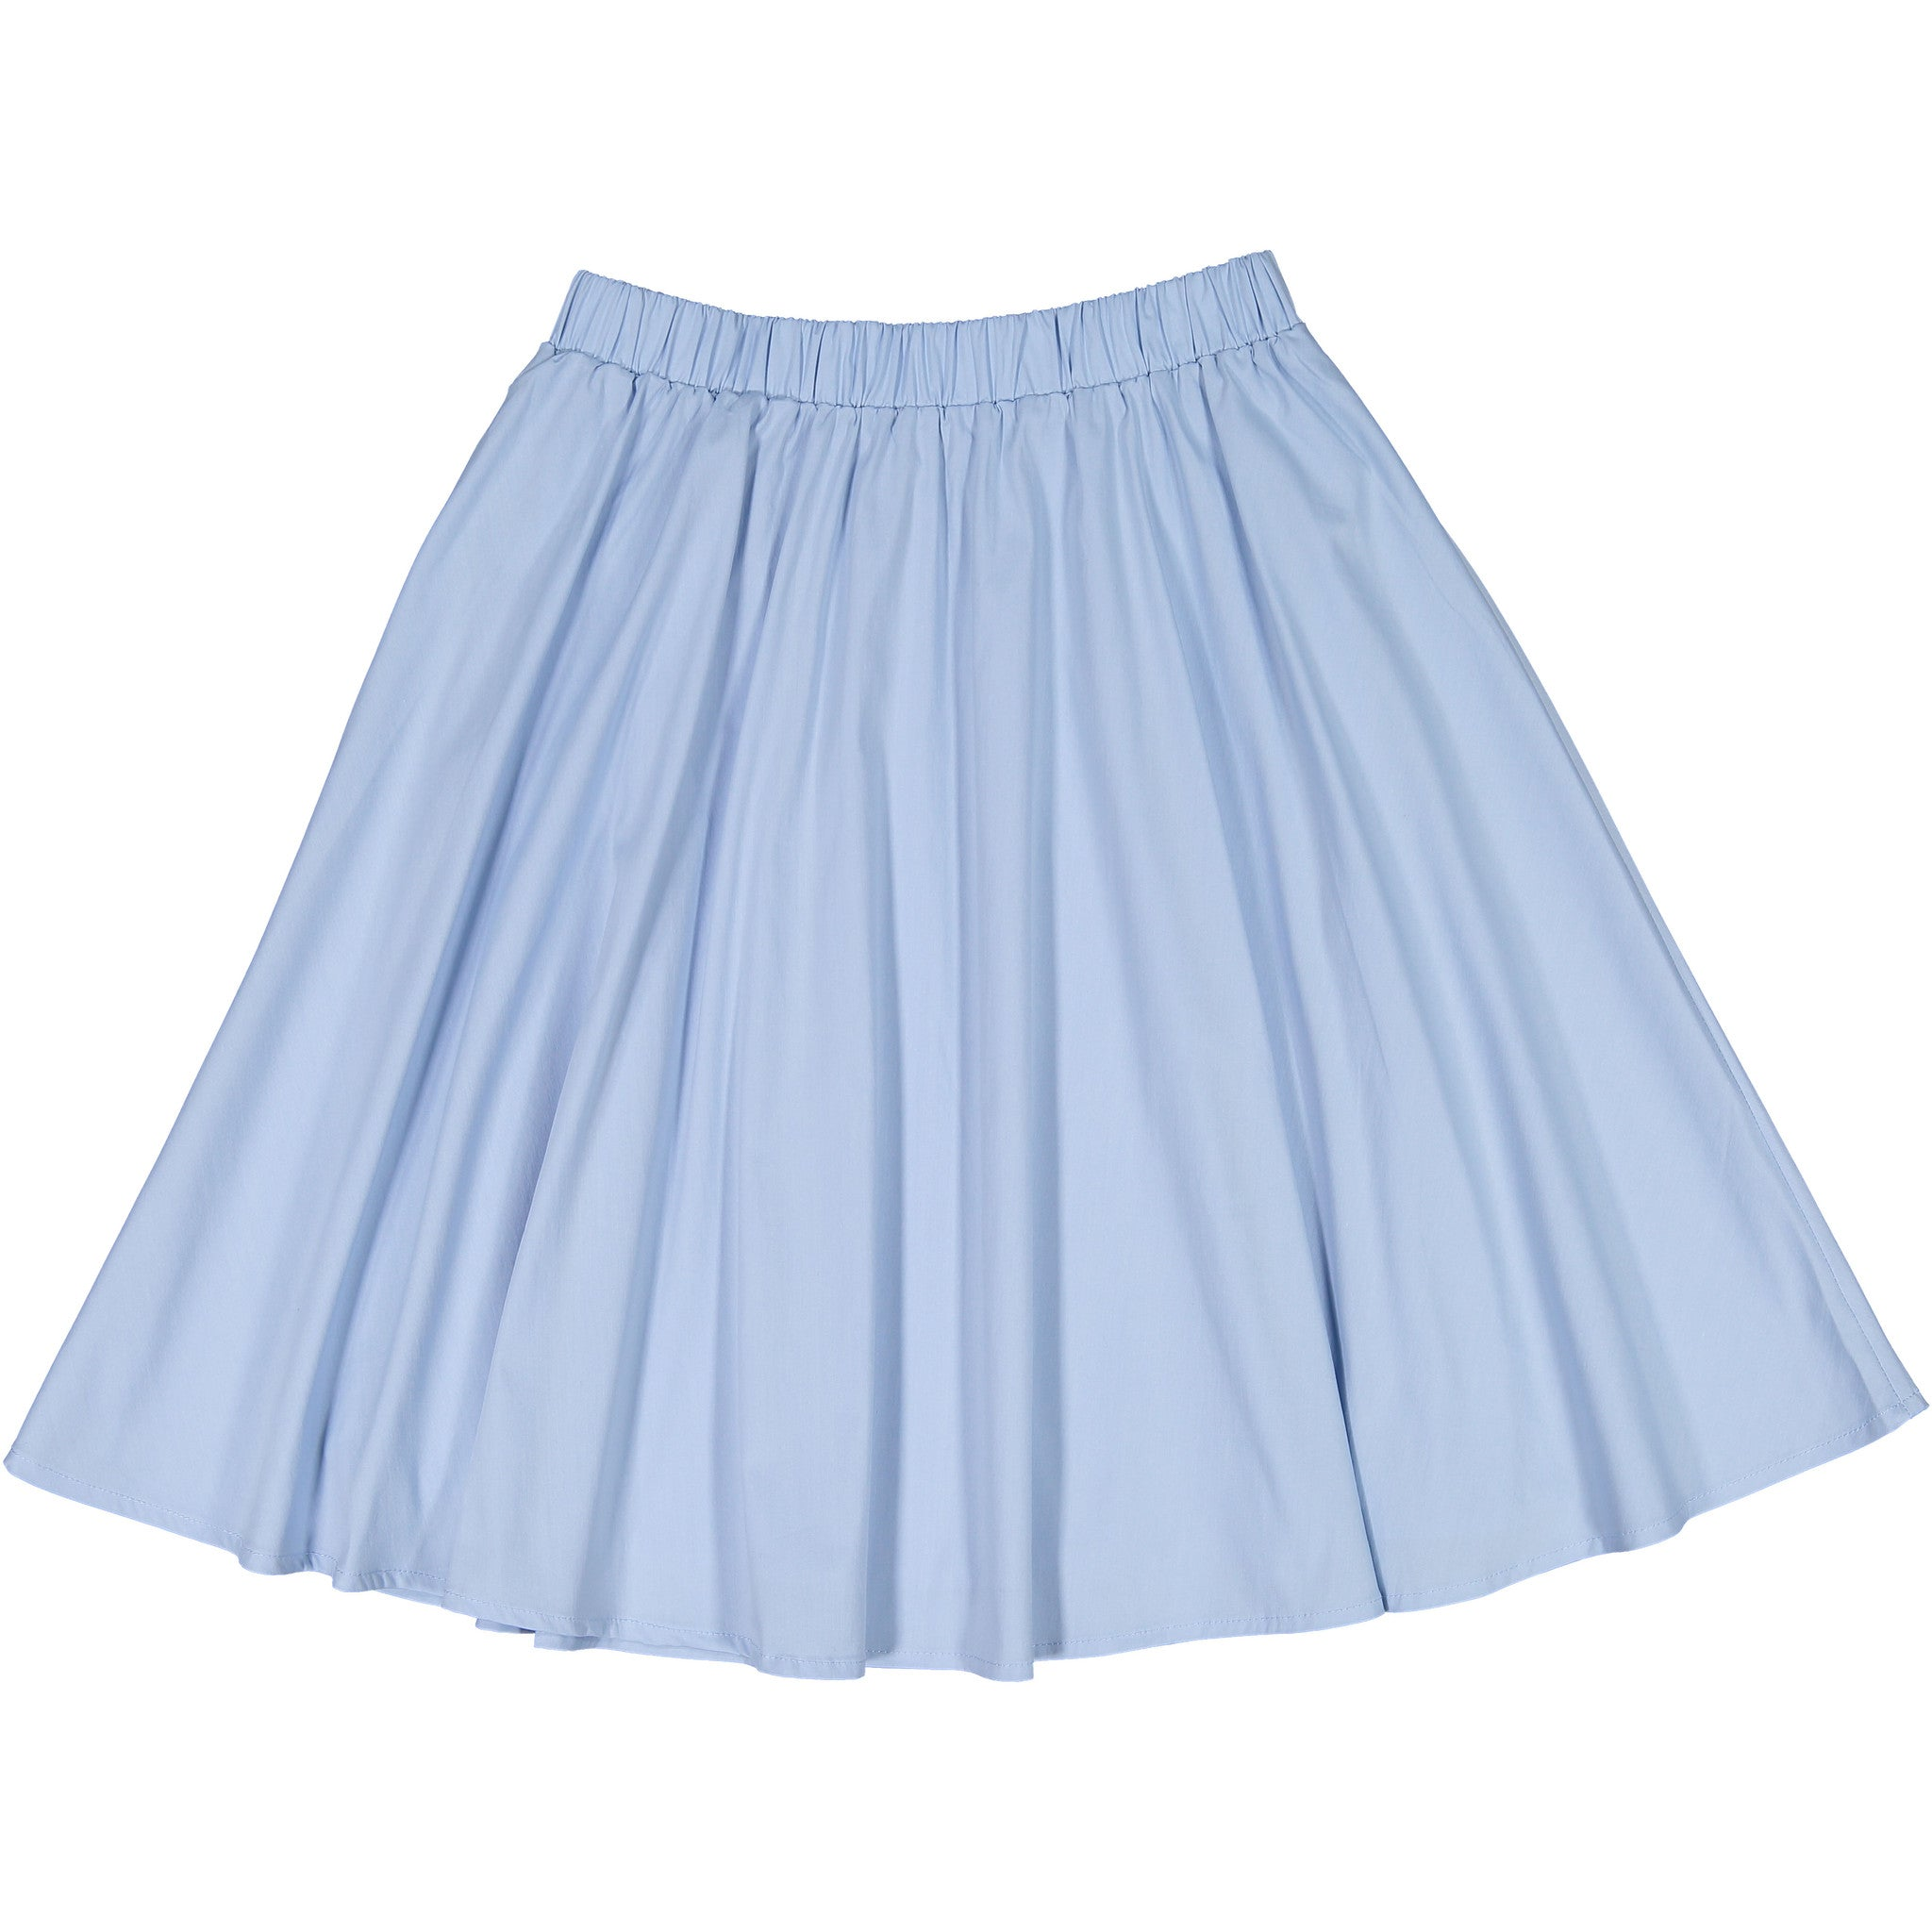 Ava & Lu The Blue Lifeboat Skirt - Ladida